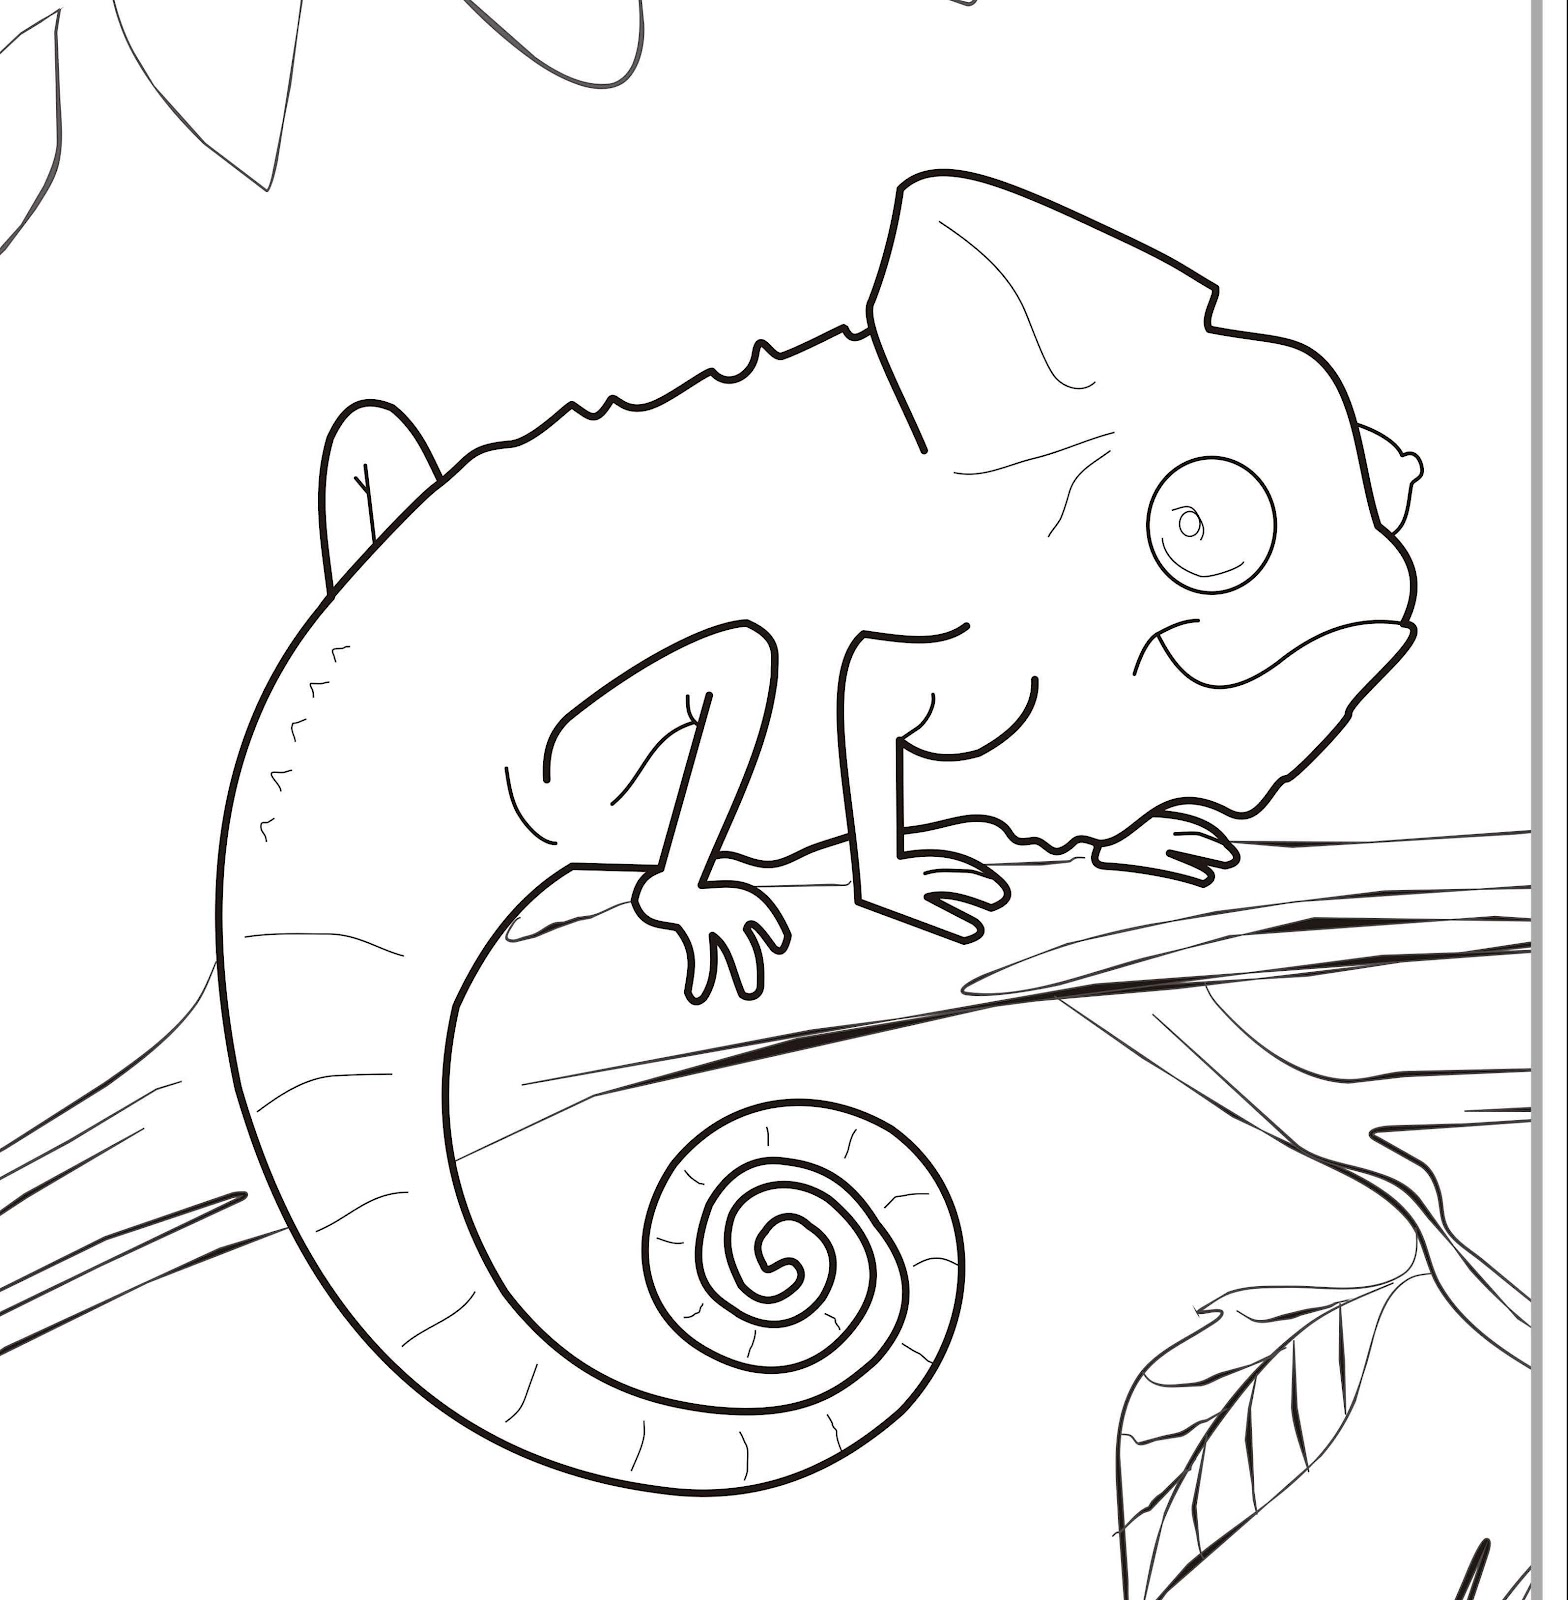 Mixed Up Chameleon Test